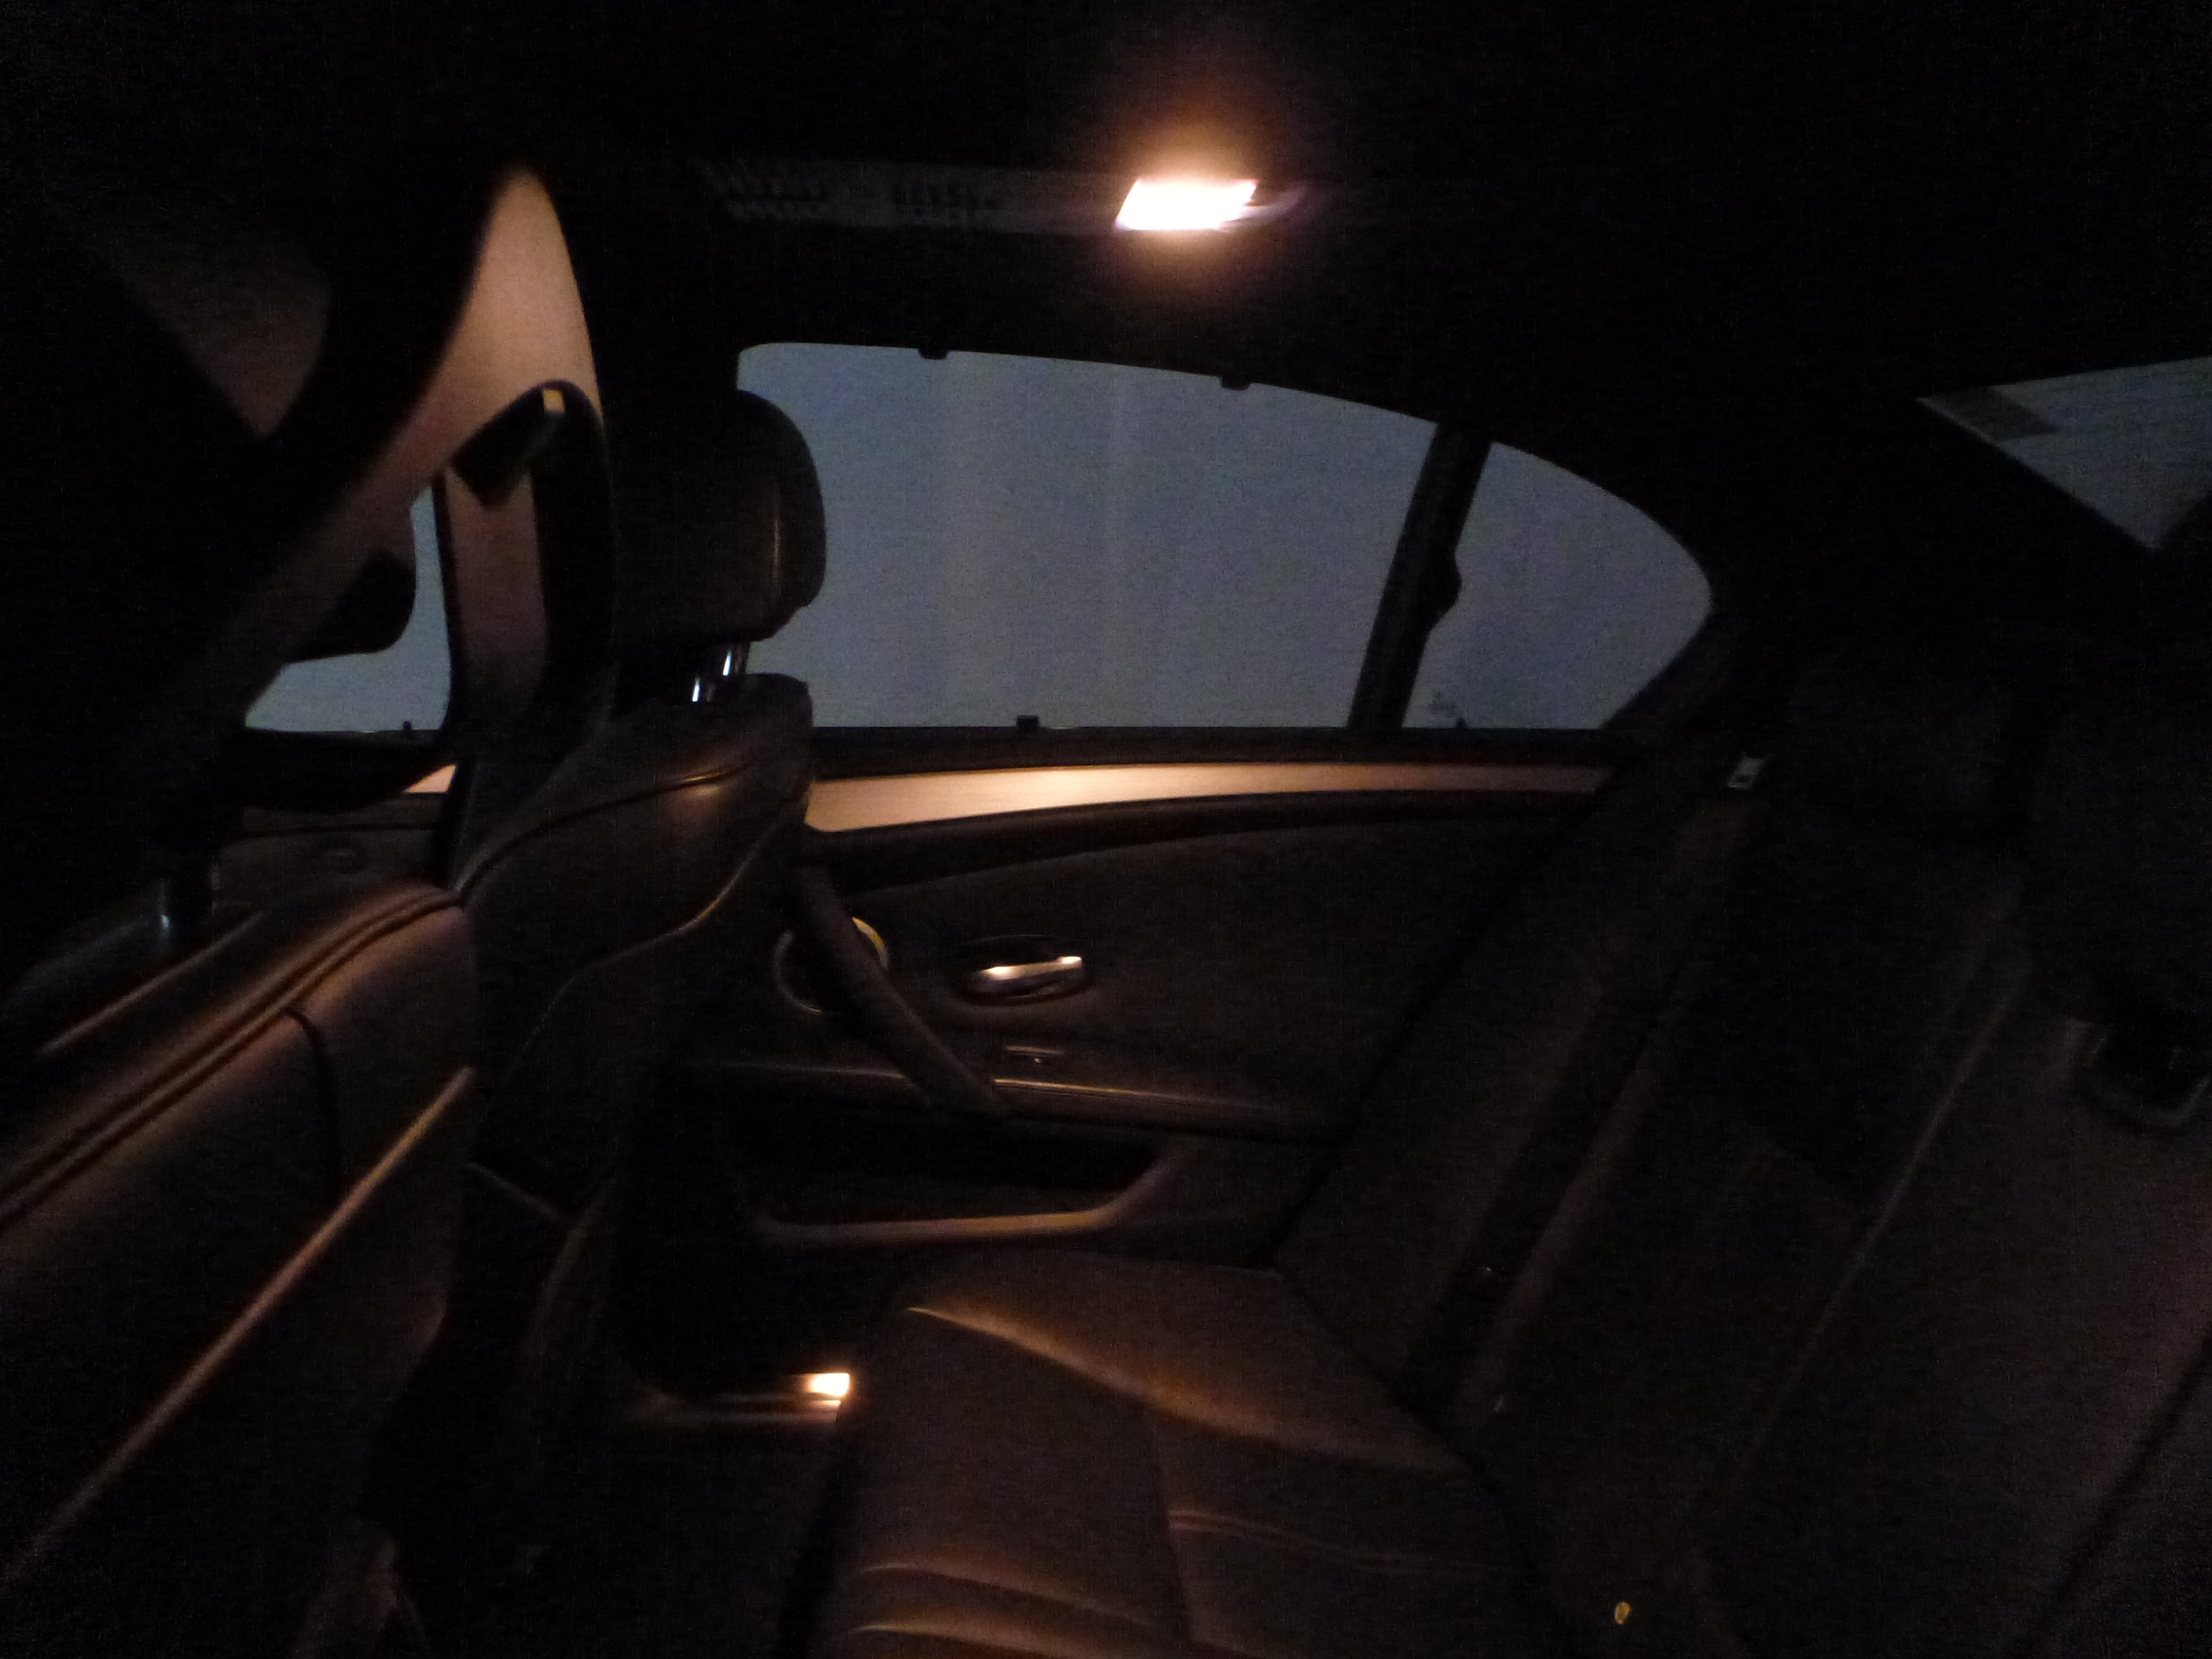 Interior License Plate Led Light Install Instructions And Pics Bmw M5 Forum And M6 Forums